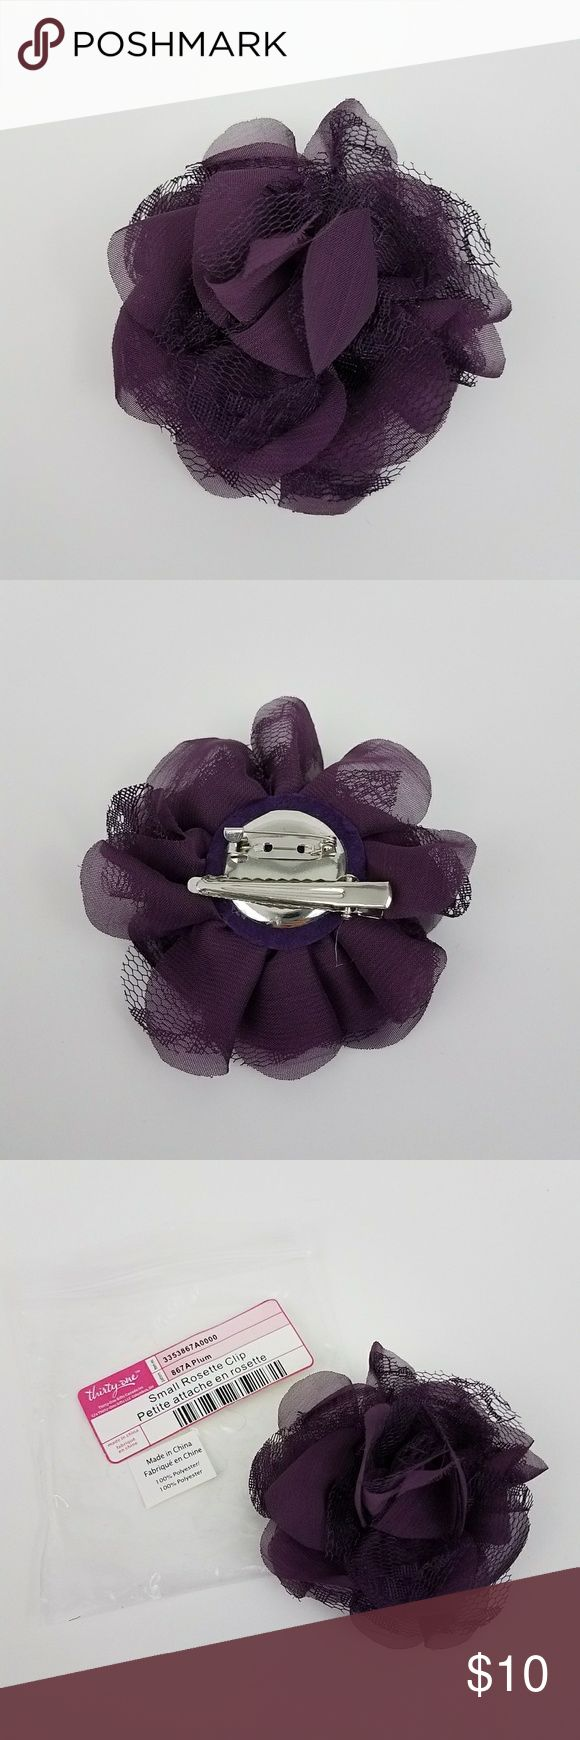 {Thirty-one} Rosette Hair Clip/Brooch-Plum NWT {New In Package, NWT} Beautiful, plum colored, rosette is made textured lace & organza fabric. Features both a pin and clip on the back for versatile use. Clip in your hair or pin as a broach, on a purse, handbag, jacket, shirt, etc. Approx. 4 inches in diameter. @405dec Thirty-one  Accessories Hair Accessories